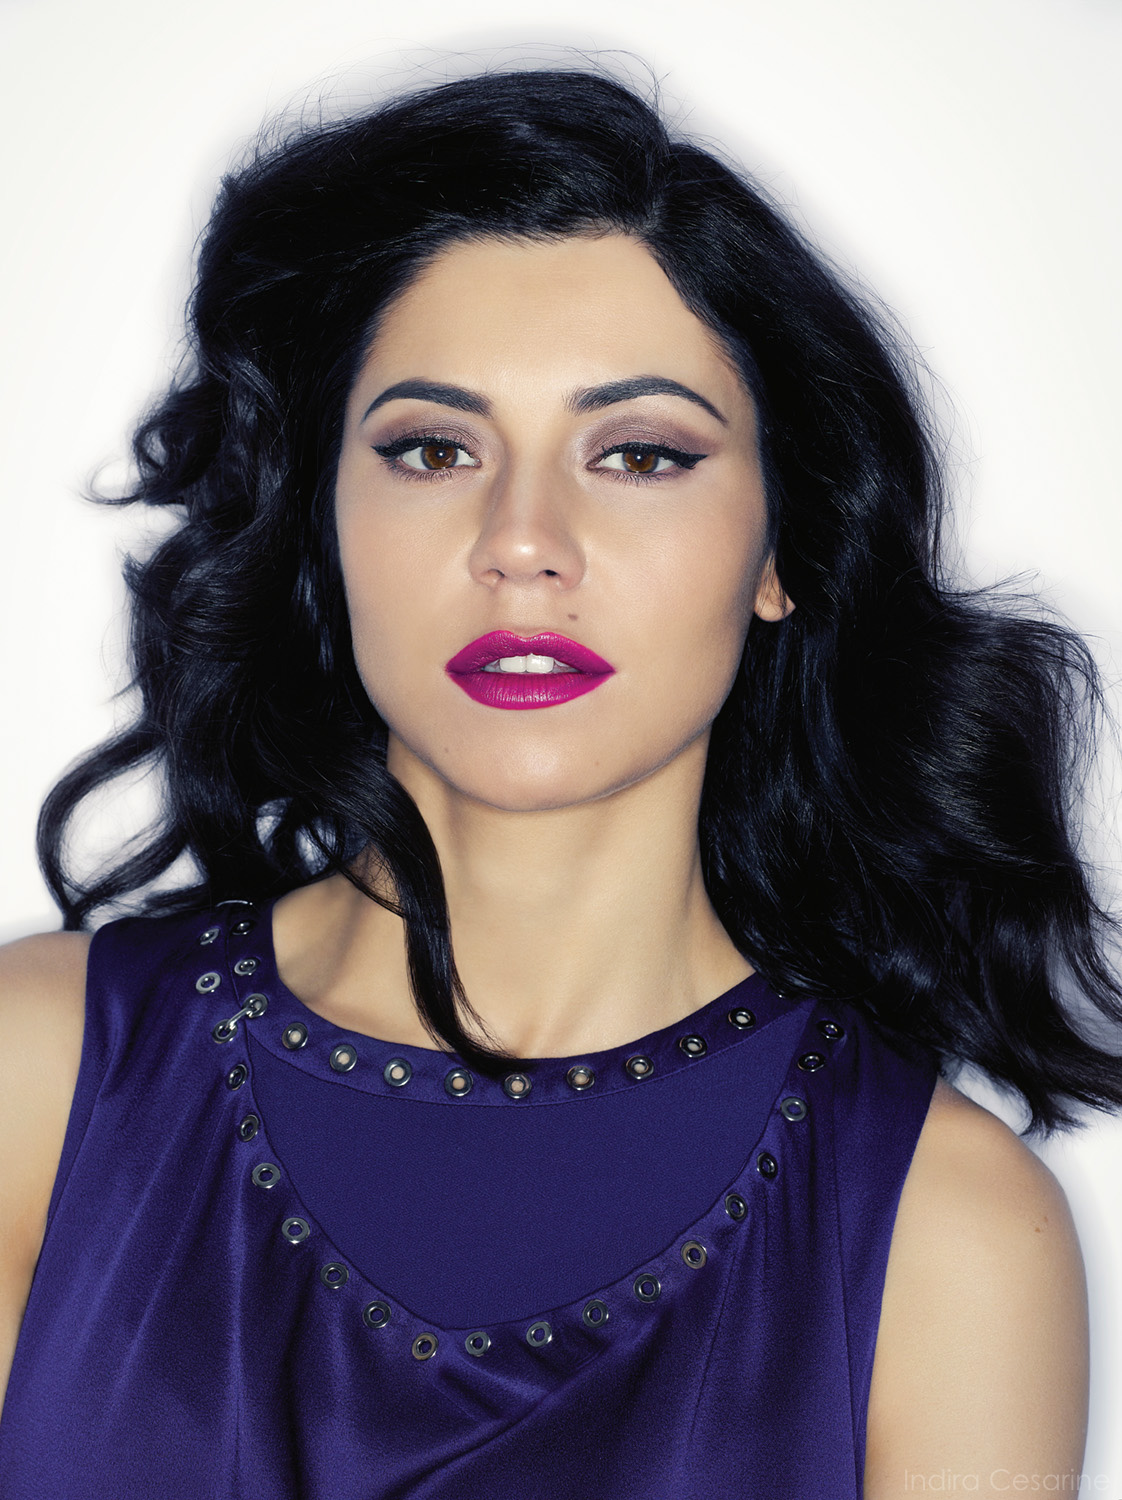 Marina-Diamonds-Photography-Indira-Cesarine-011.jpg